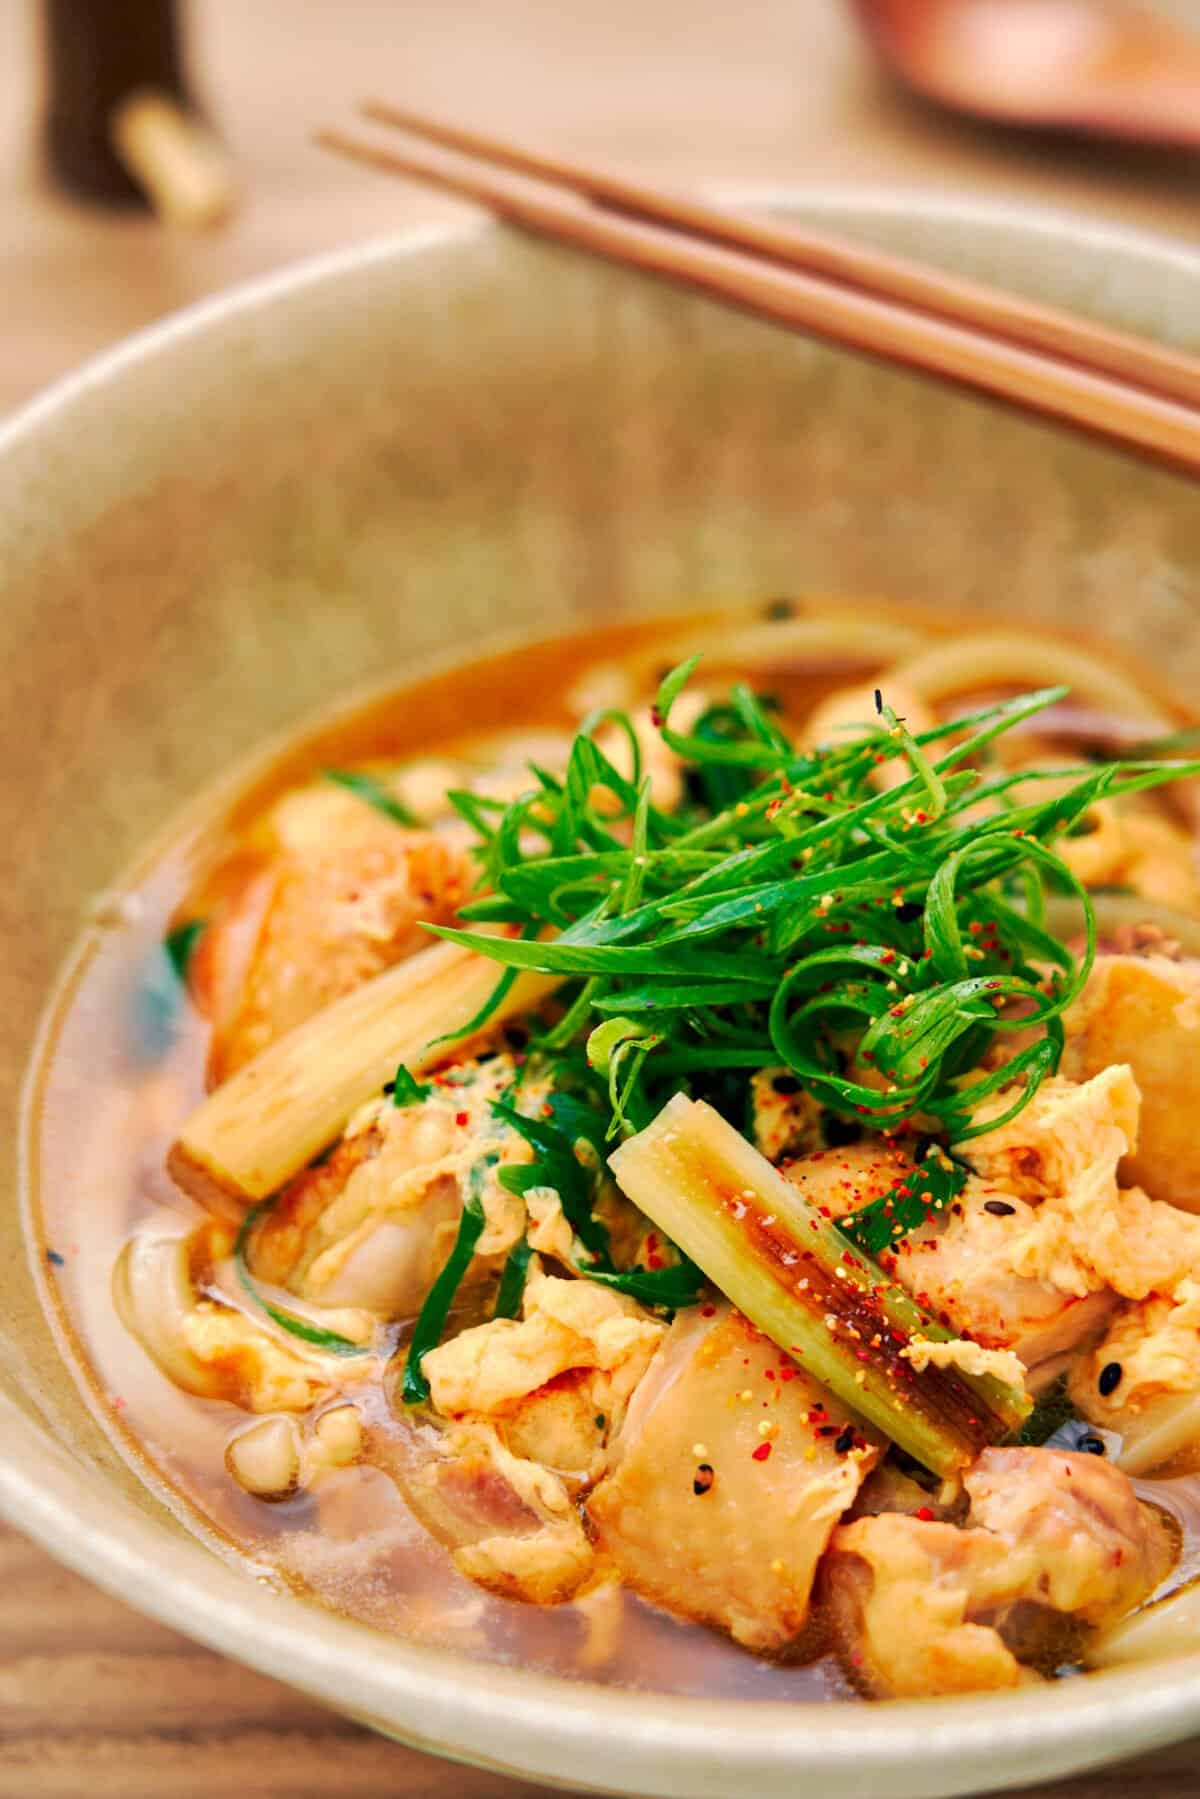 With big chunks of juicy chicken and thick udon noodles in a savory Japanese chicken soup, this easy Chicken Udon recipe comes together in under 10 minutes.